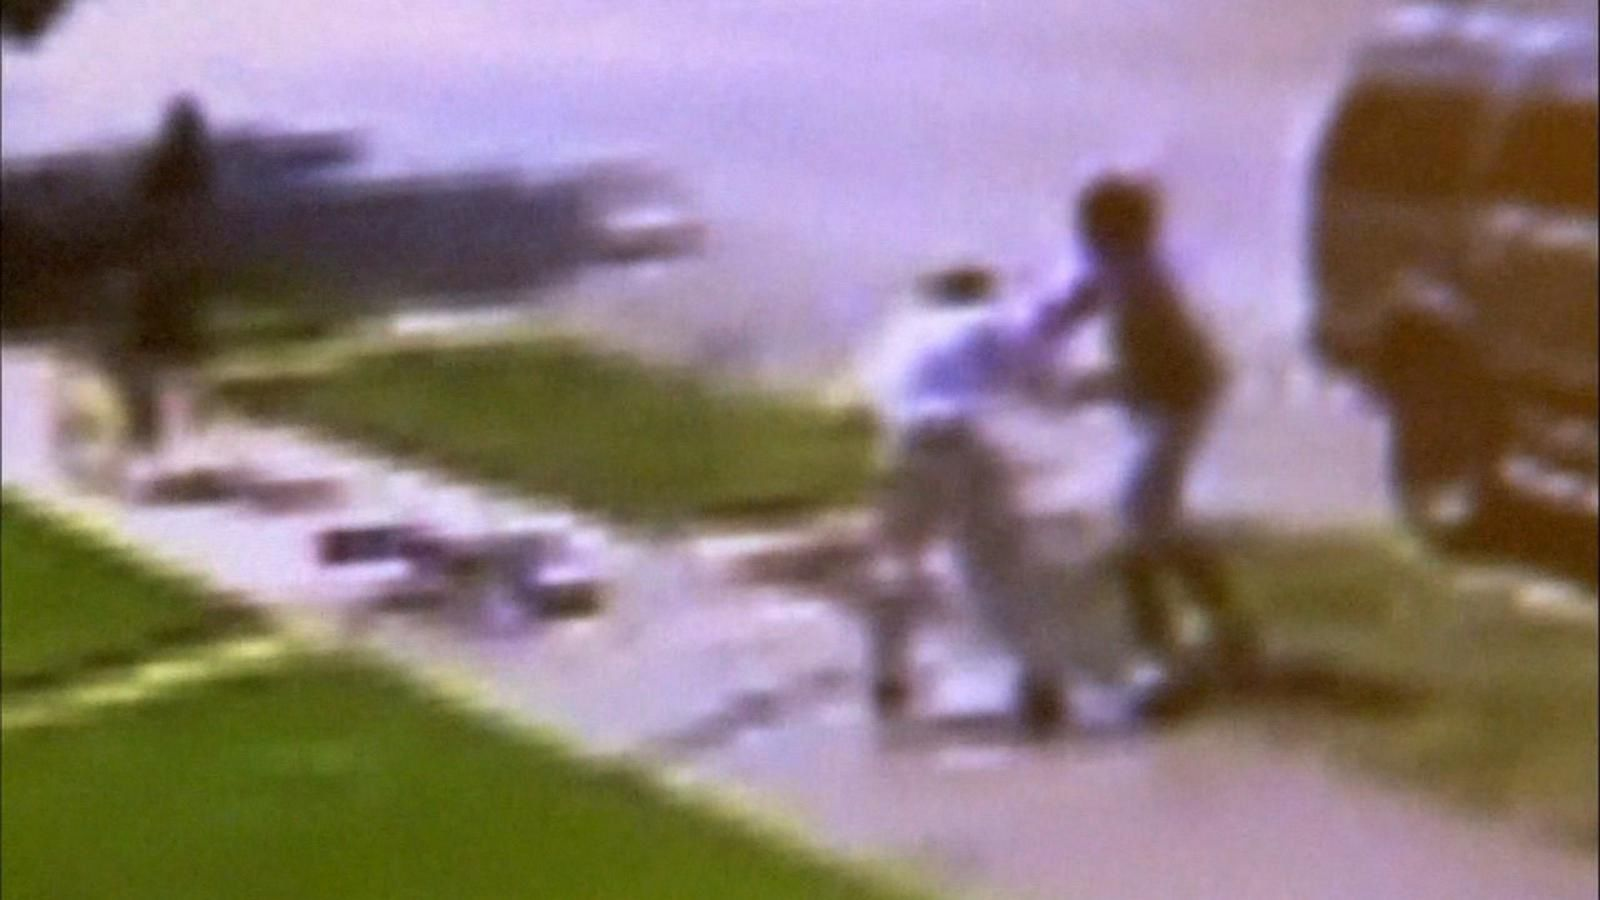 VIDEO: Chicago Senior Citizen Shot While Watering His Lawn